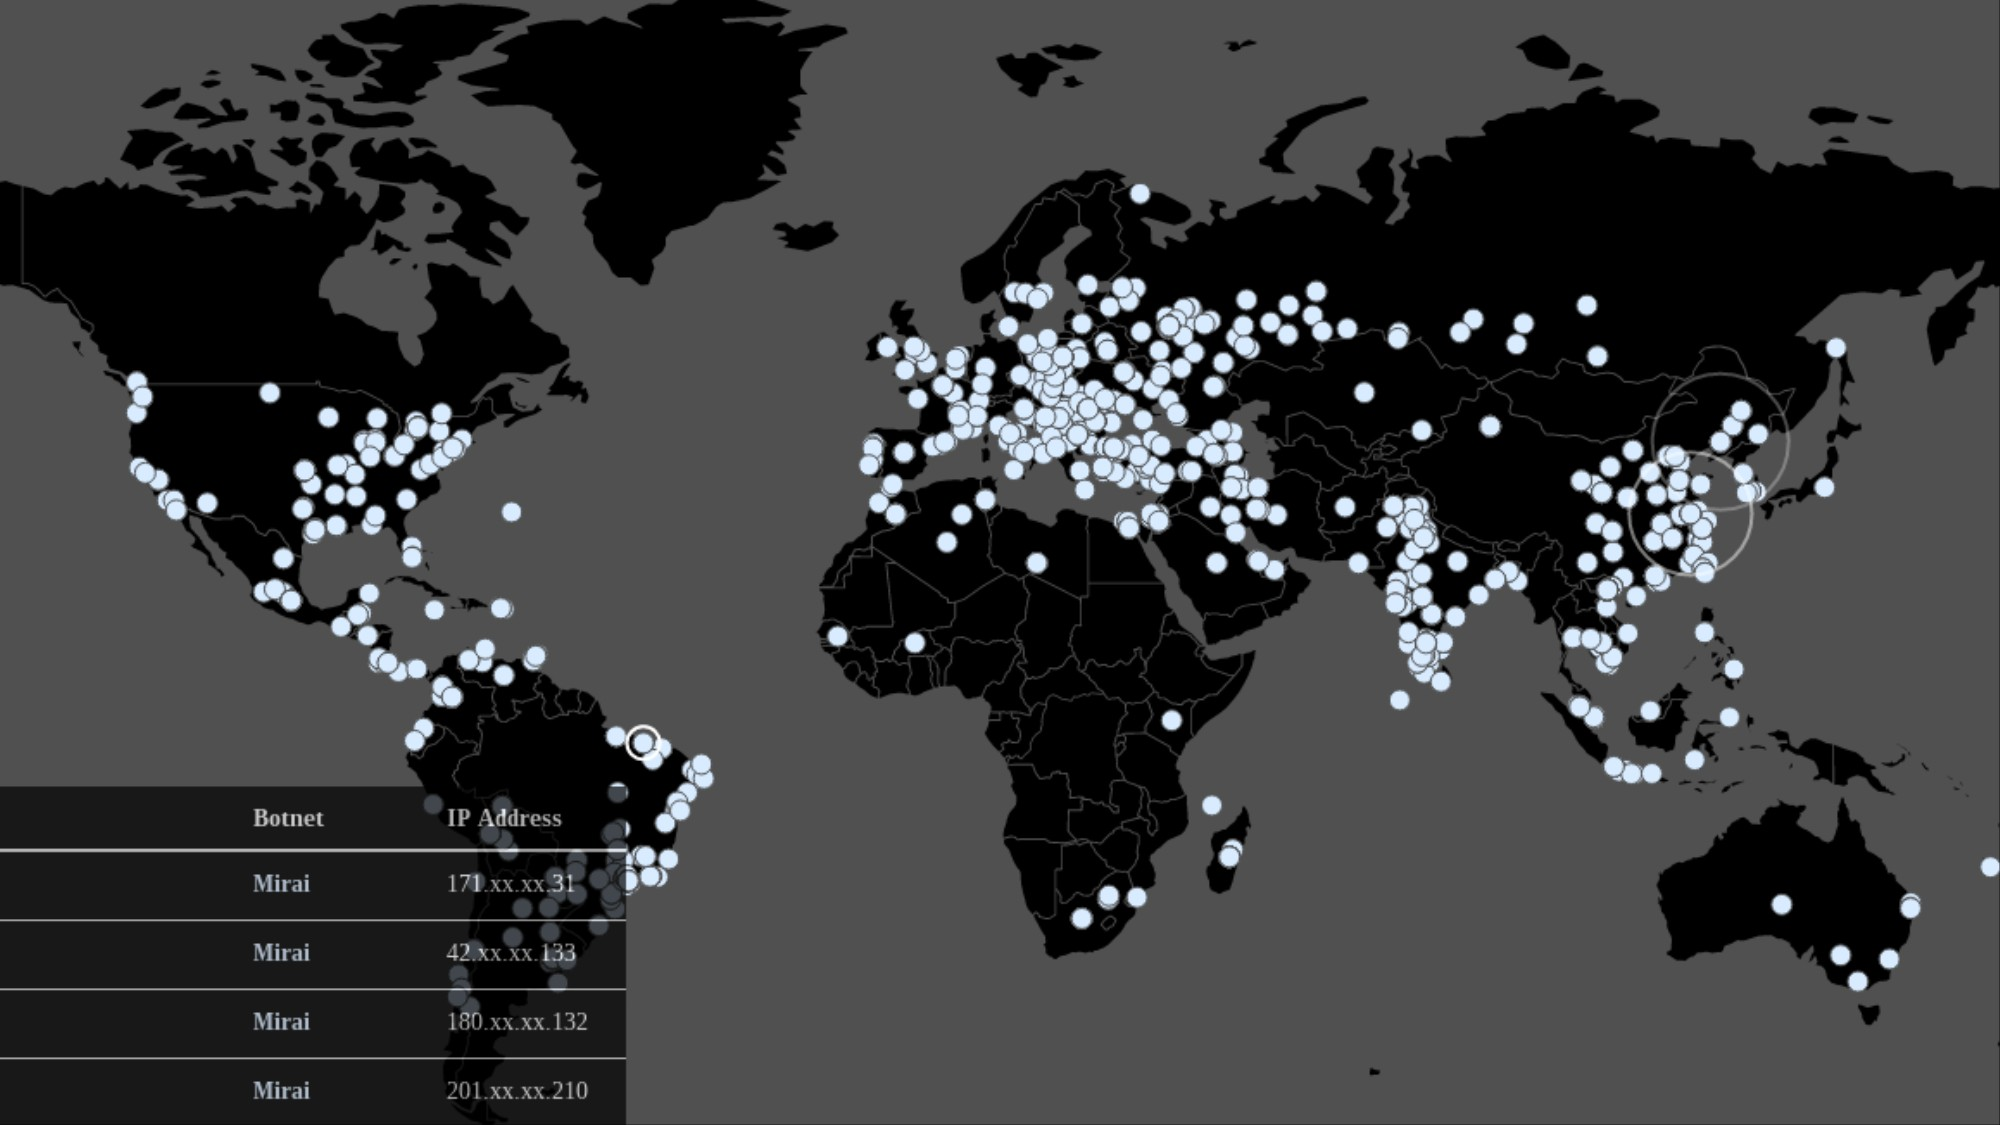 Here's a Live Map of the Mirai Malware Infecting the World - VICE on